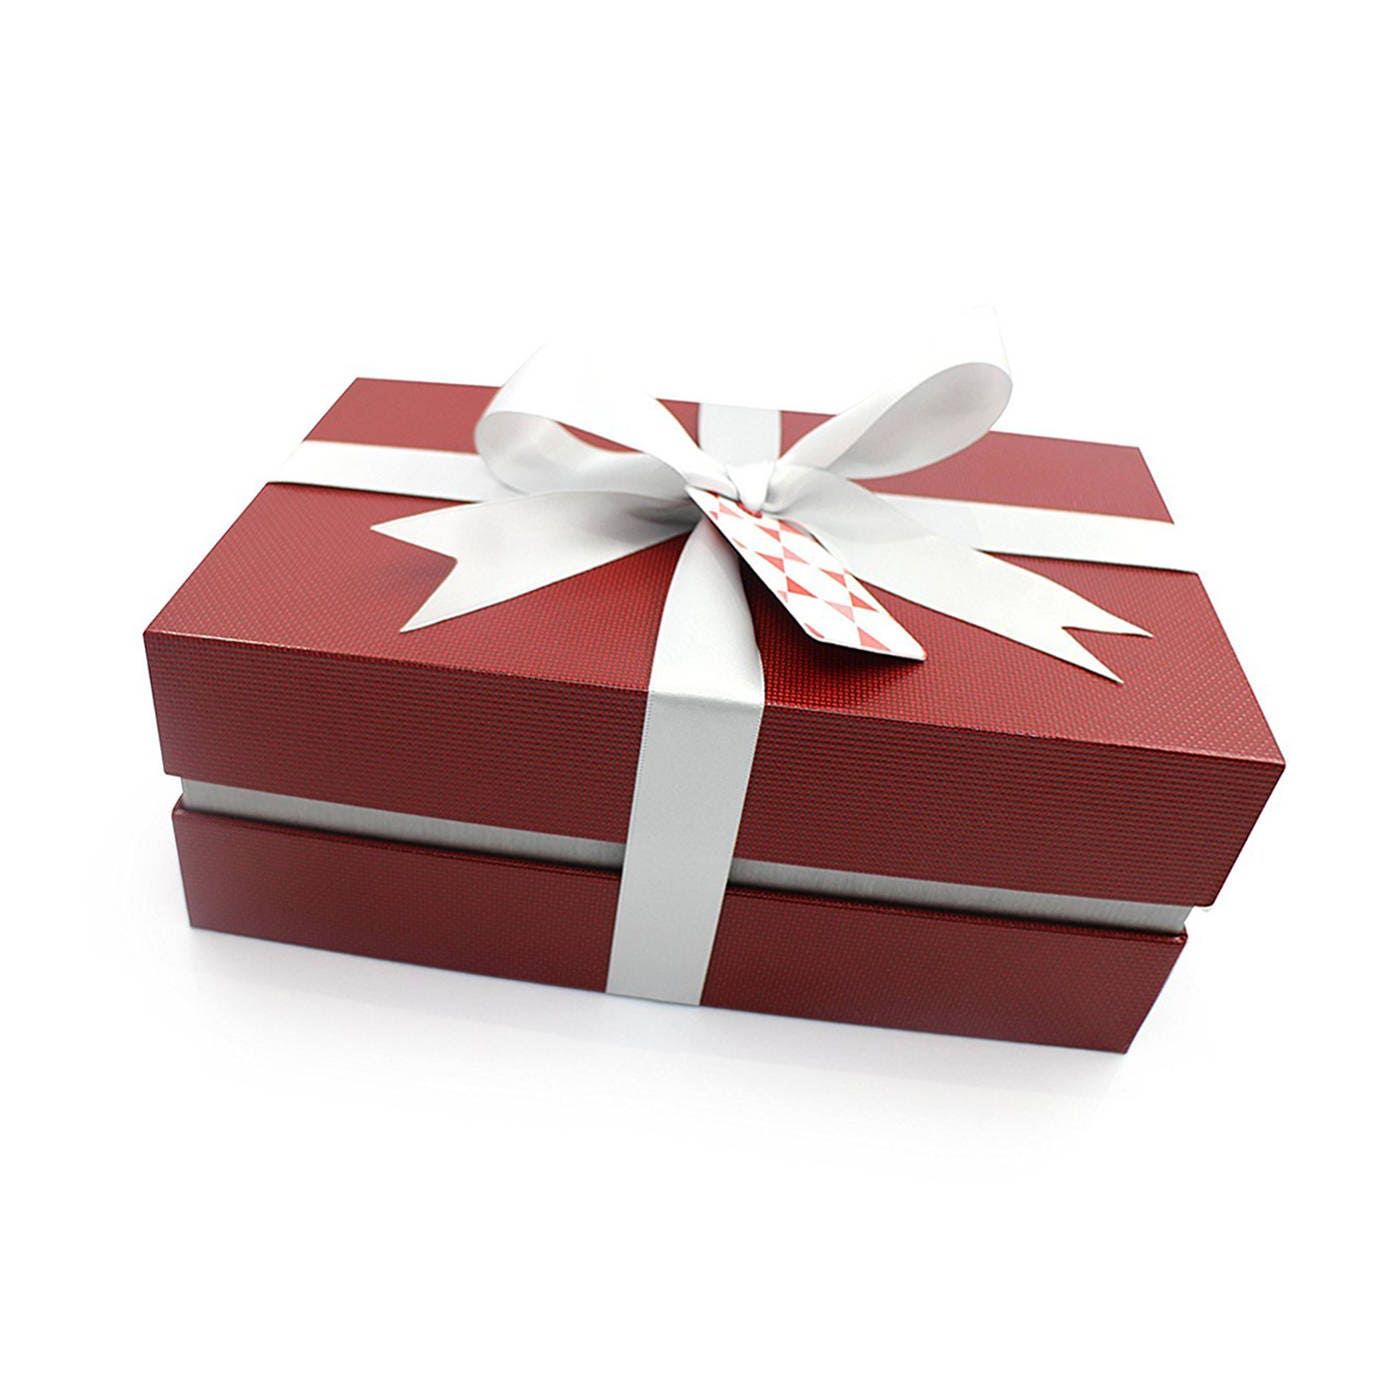 Luxurius Gift Boxes with Mini Pies, Corporate Gifts - Mini Pies